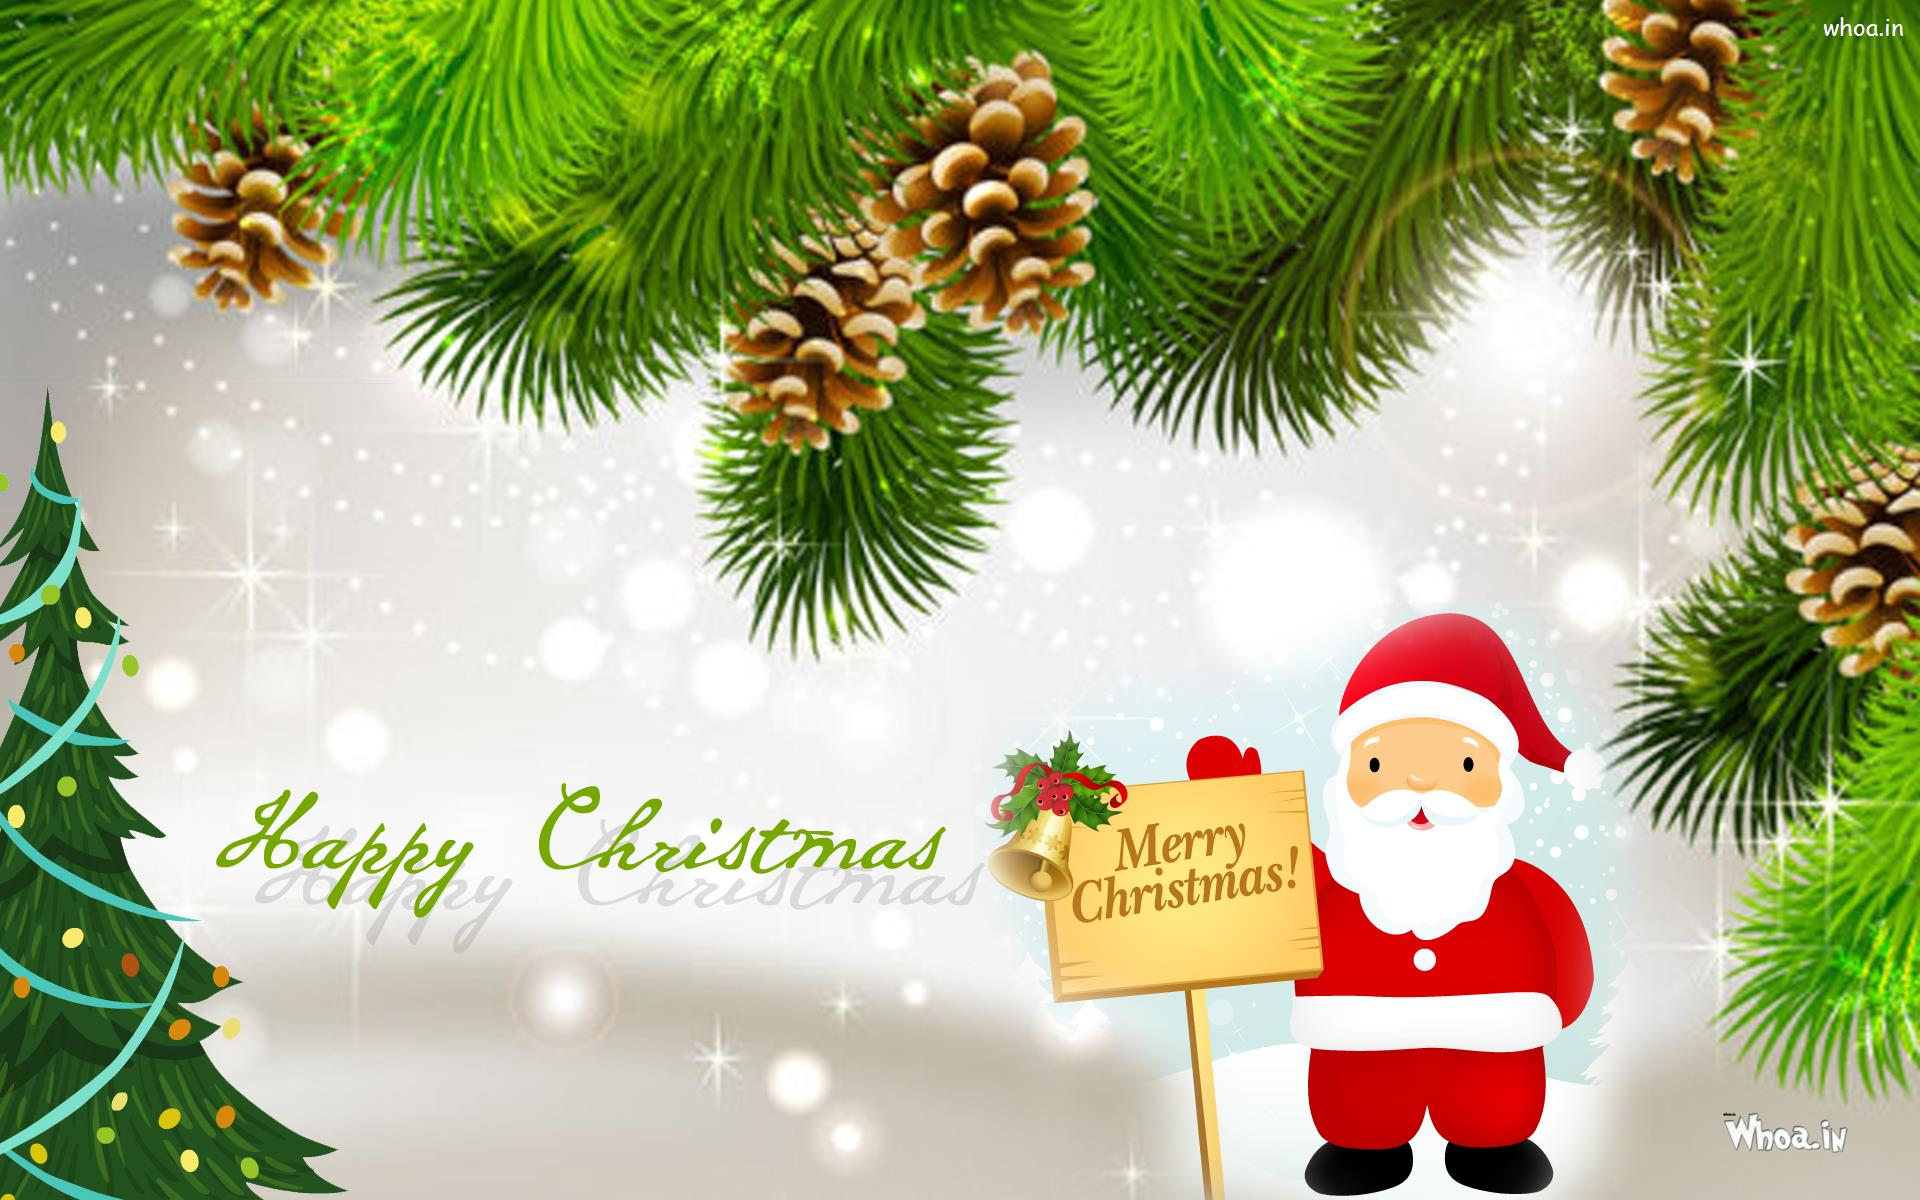 Merry Christmas Greeting Cards Santa Claus With Christmas Tree